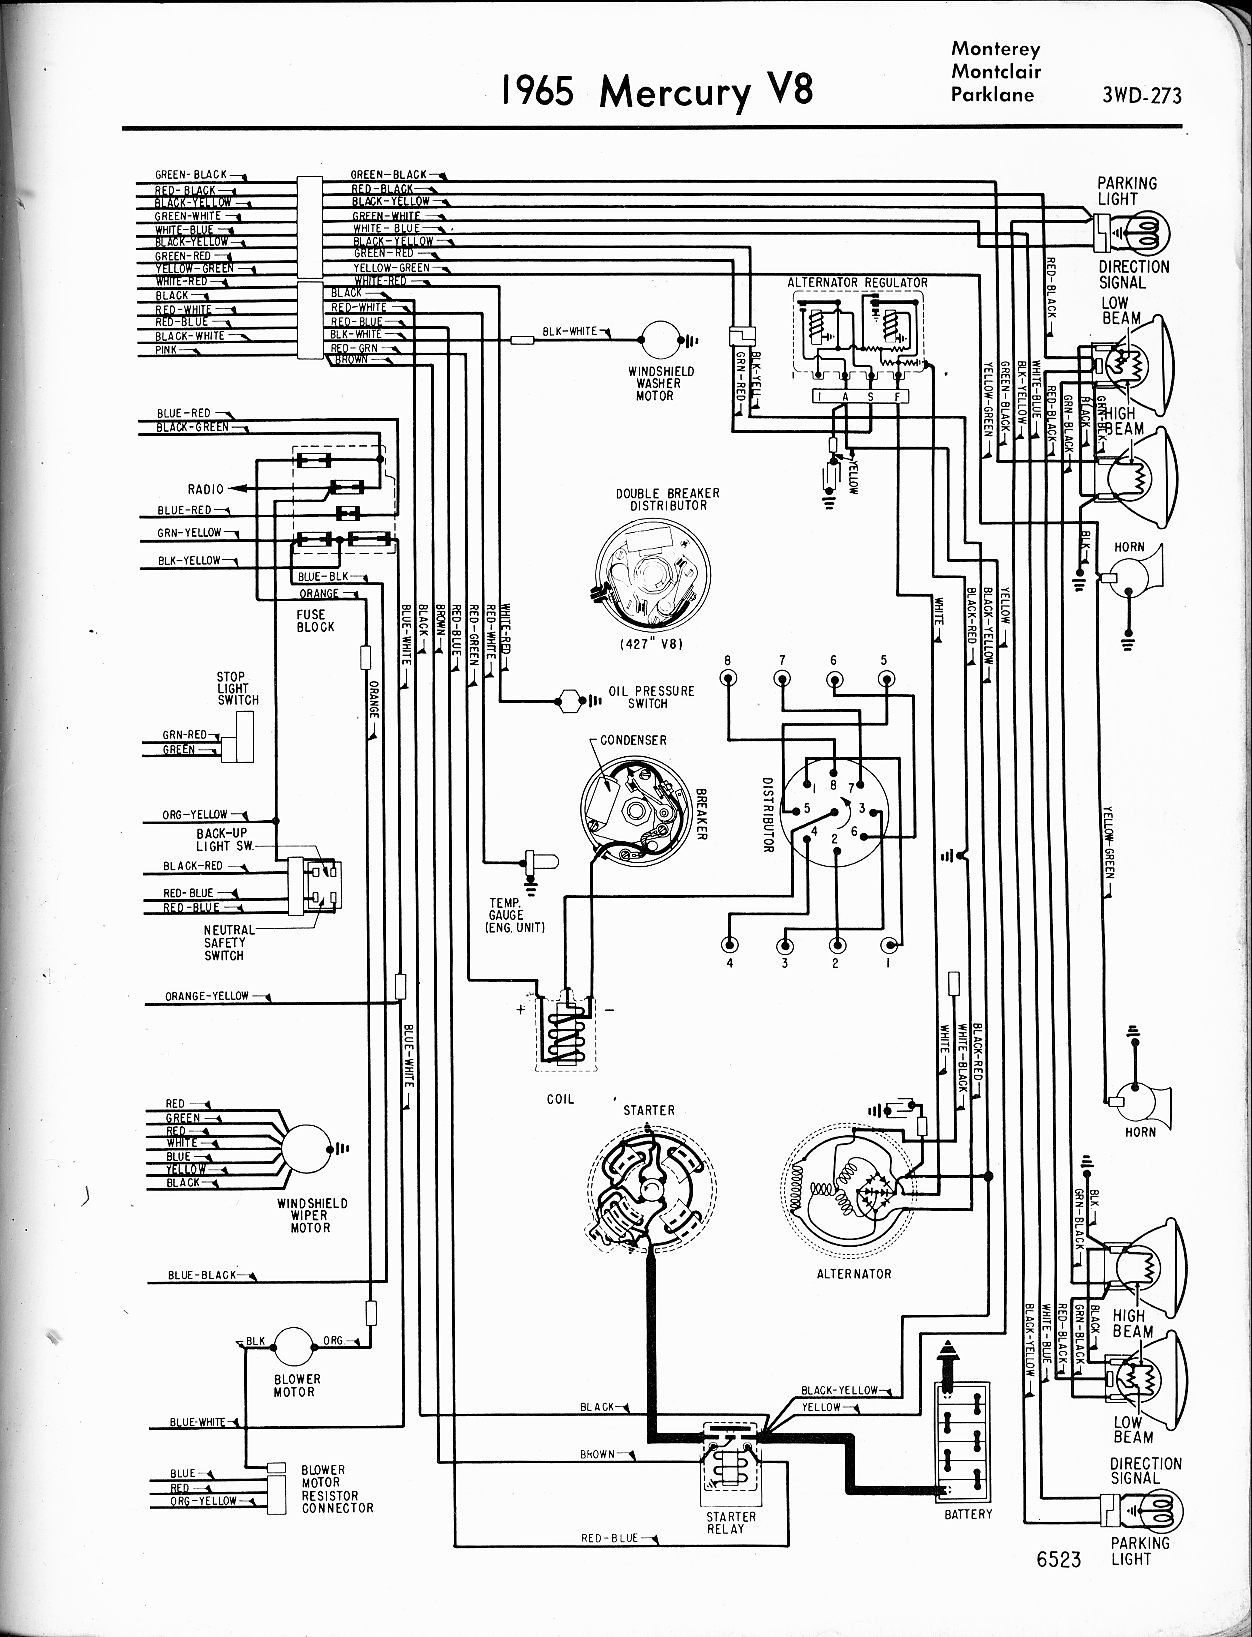 2001 cougar fuse diagram mercury cougar wiring schematic for 87 wiring diagram schematics  mercury cougar wiring schematic for 87